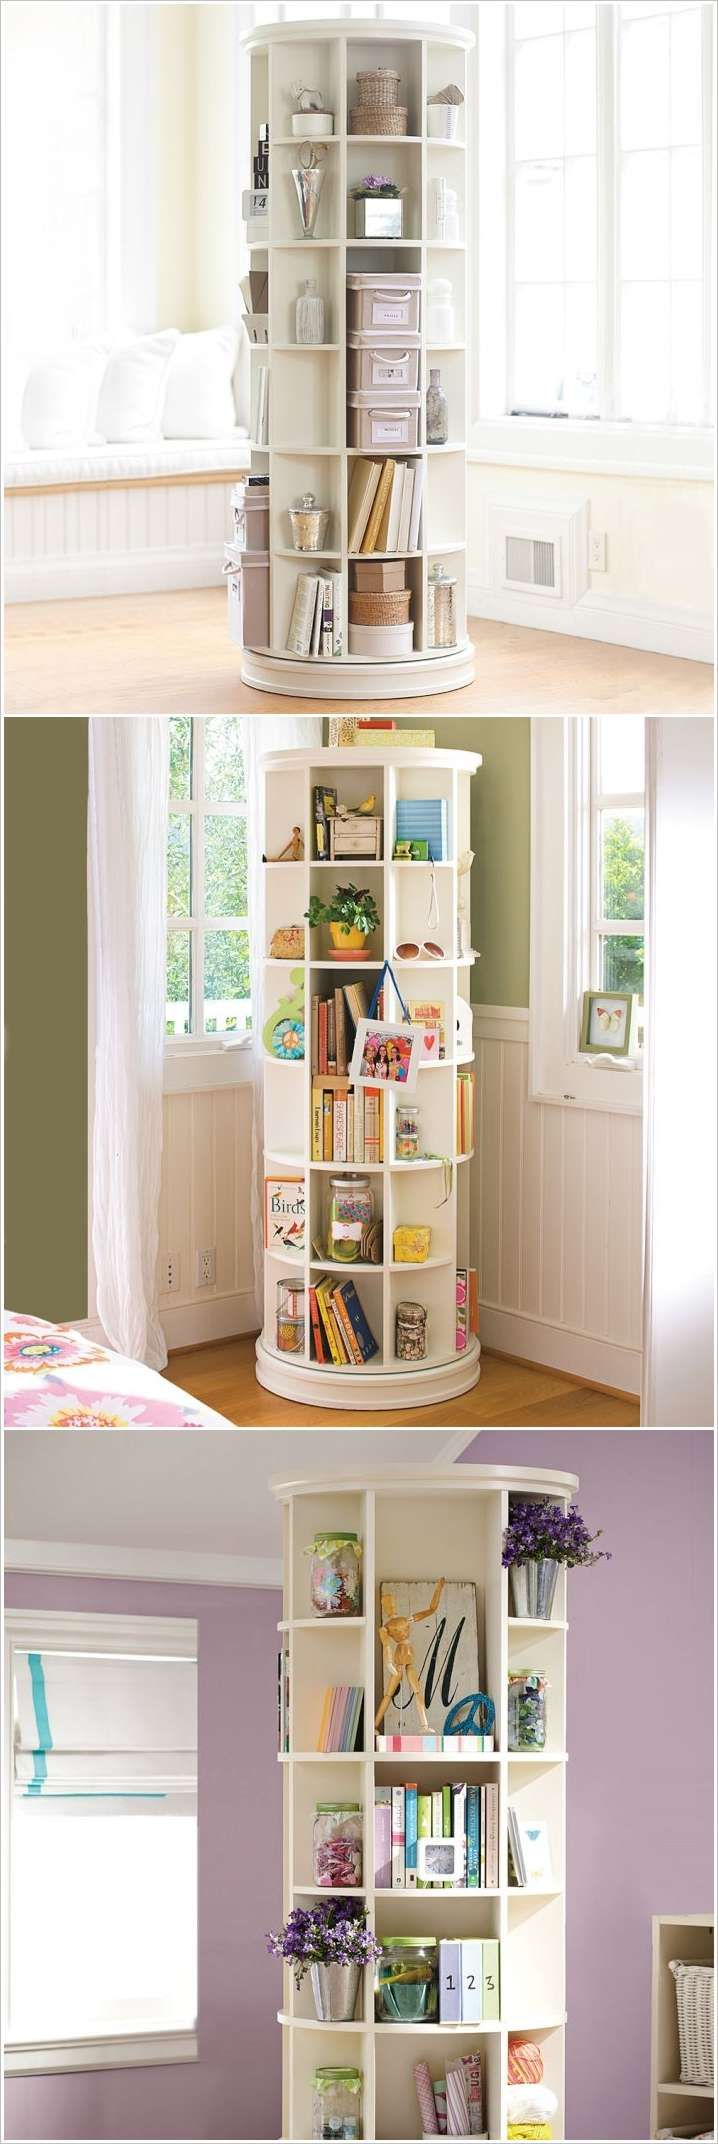 A Revolving Bookcase Loaded with Storage Space | House stuff ...